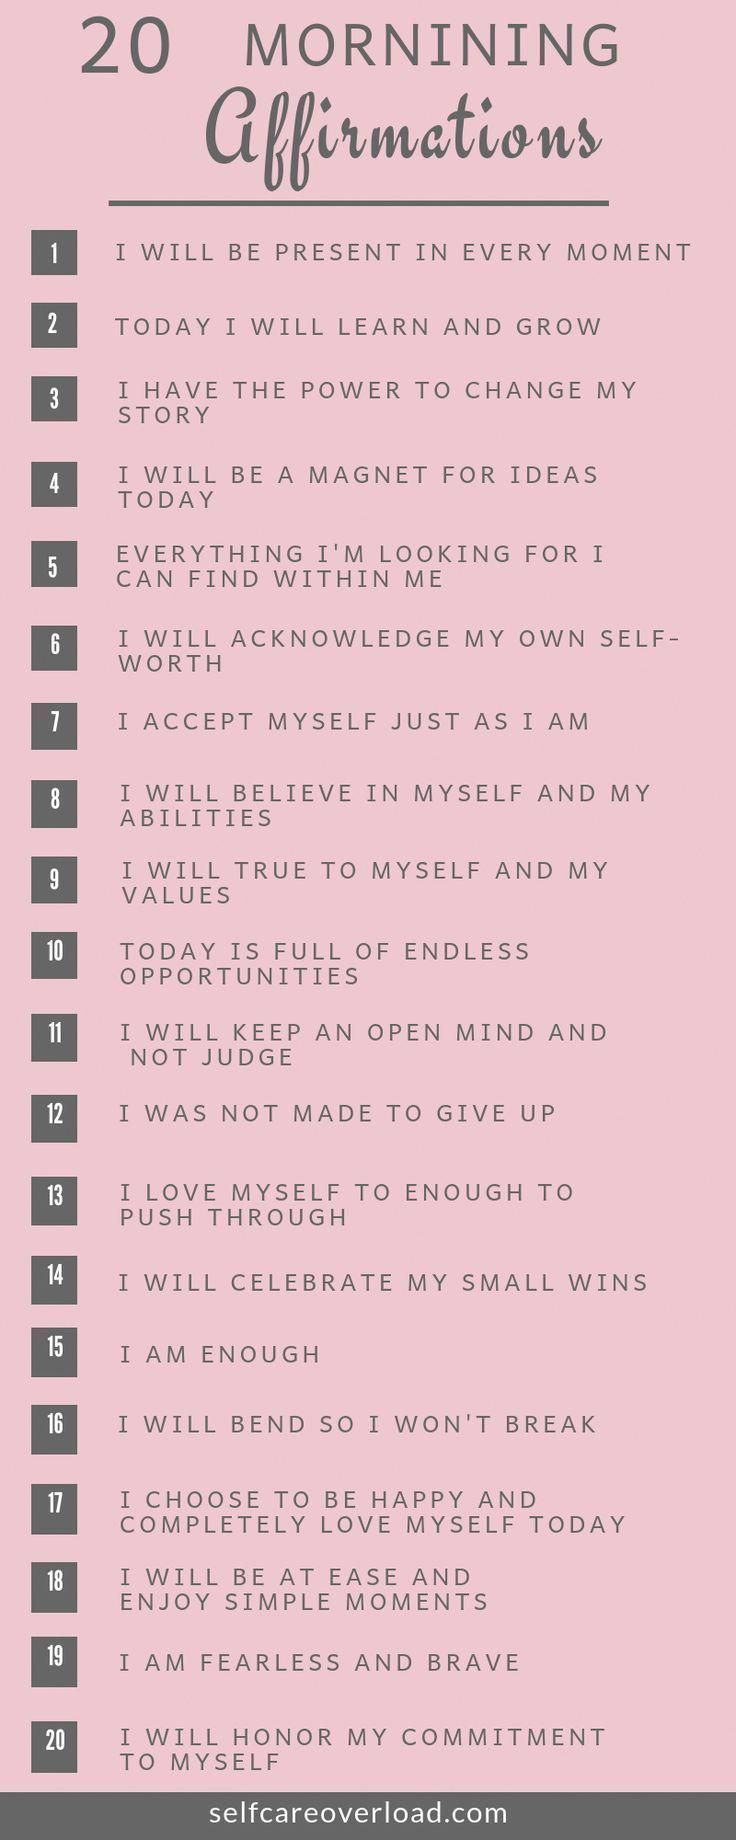 30+ 20 Morning Affirmations To Start Your Day   Self Care Overload